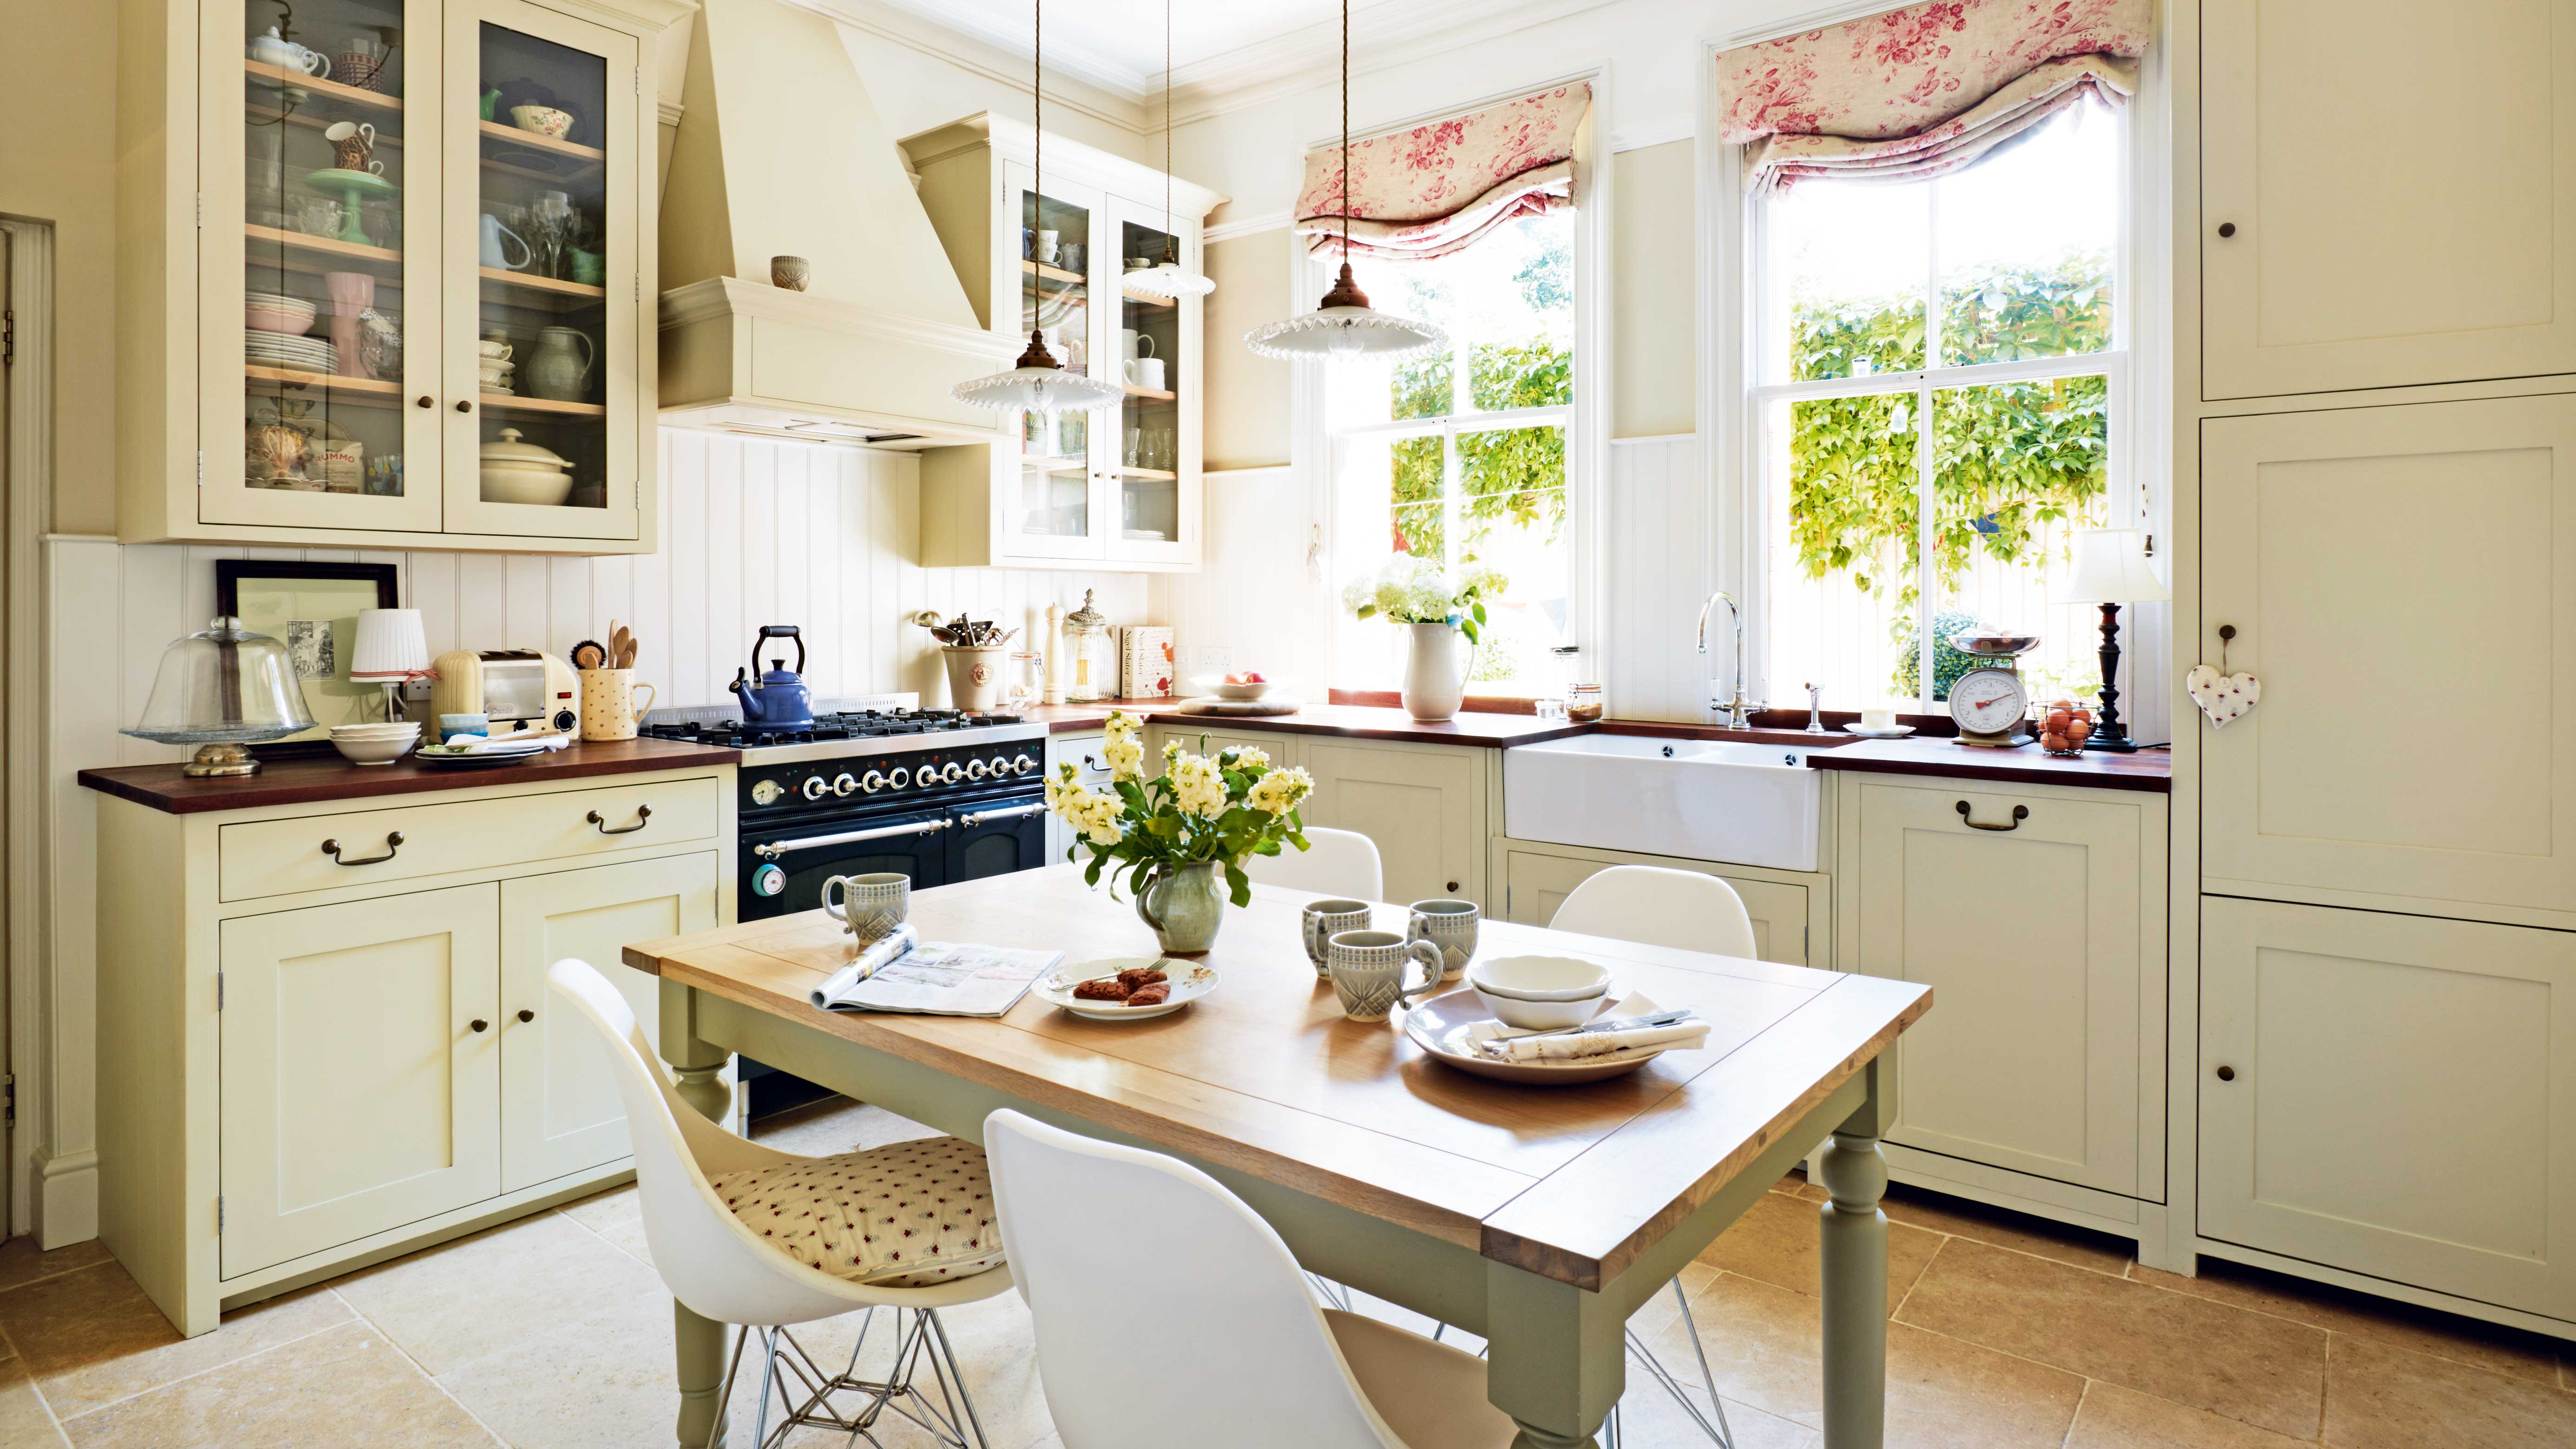 Creating Georgian and Victorian style kitchens | Real Homes